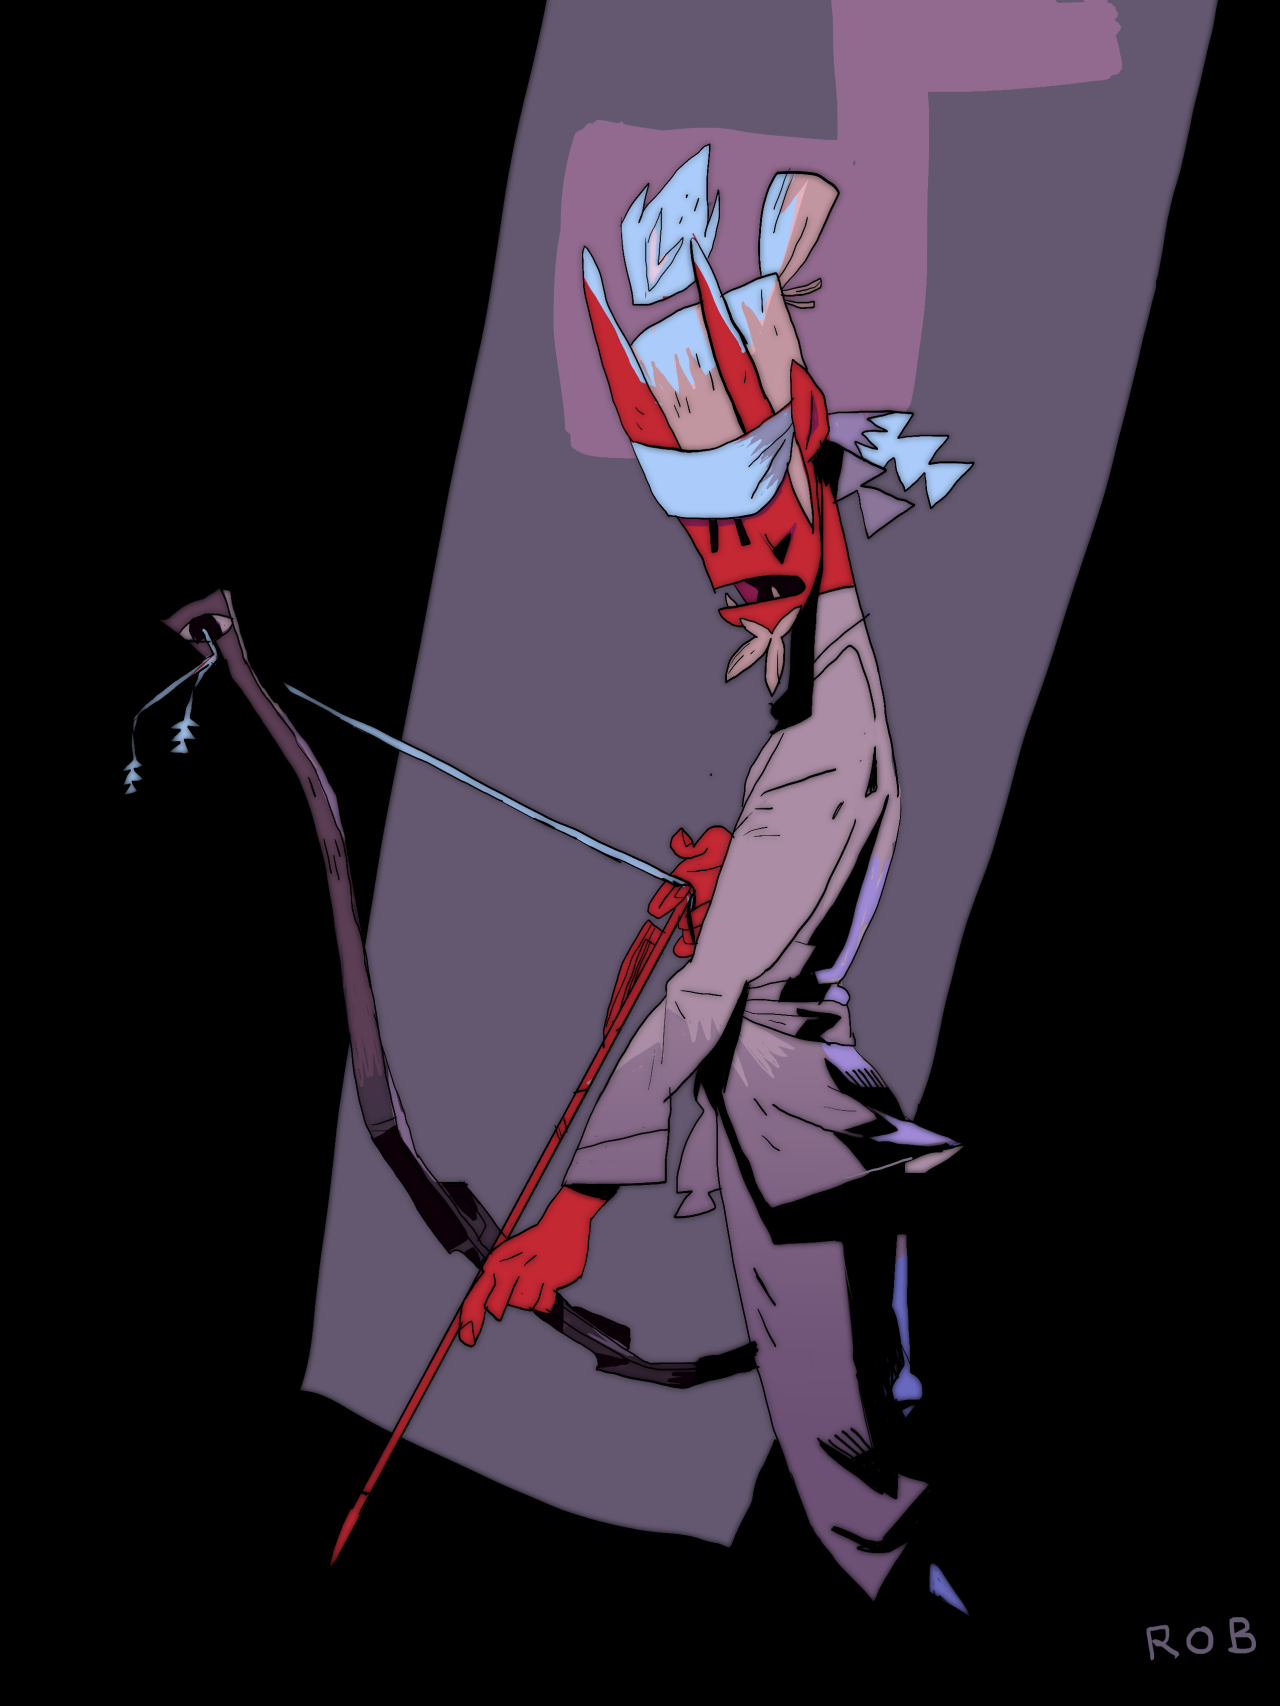 The blind archer